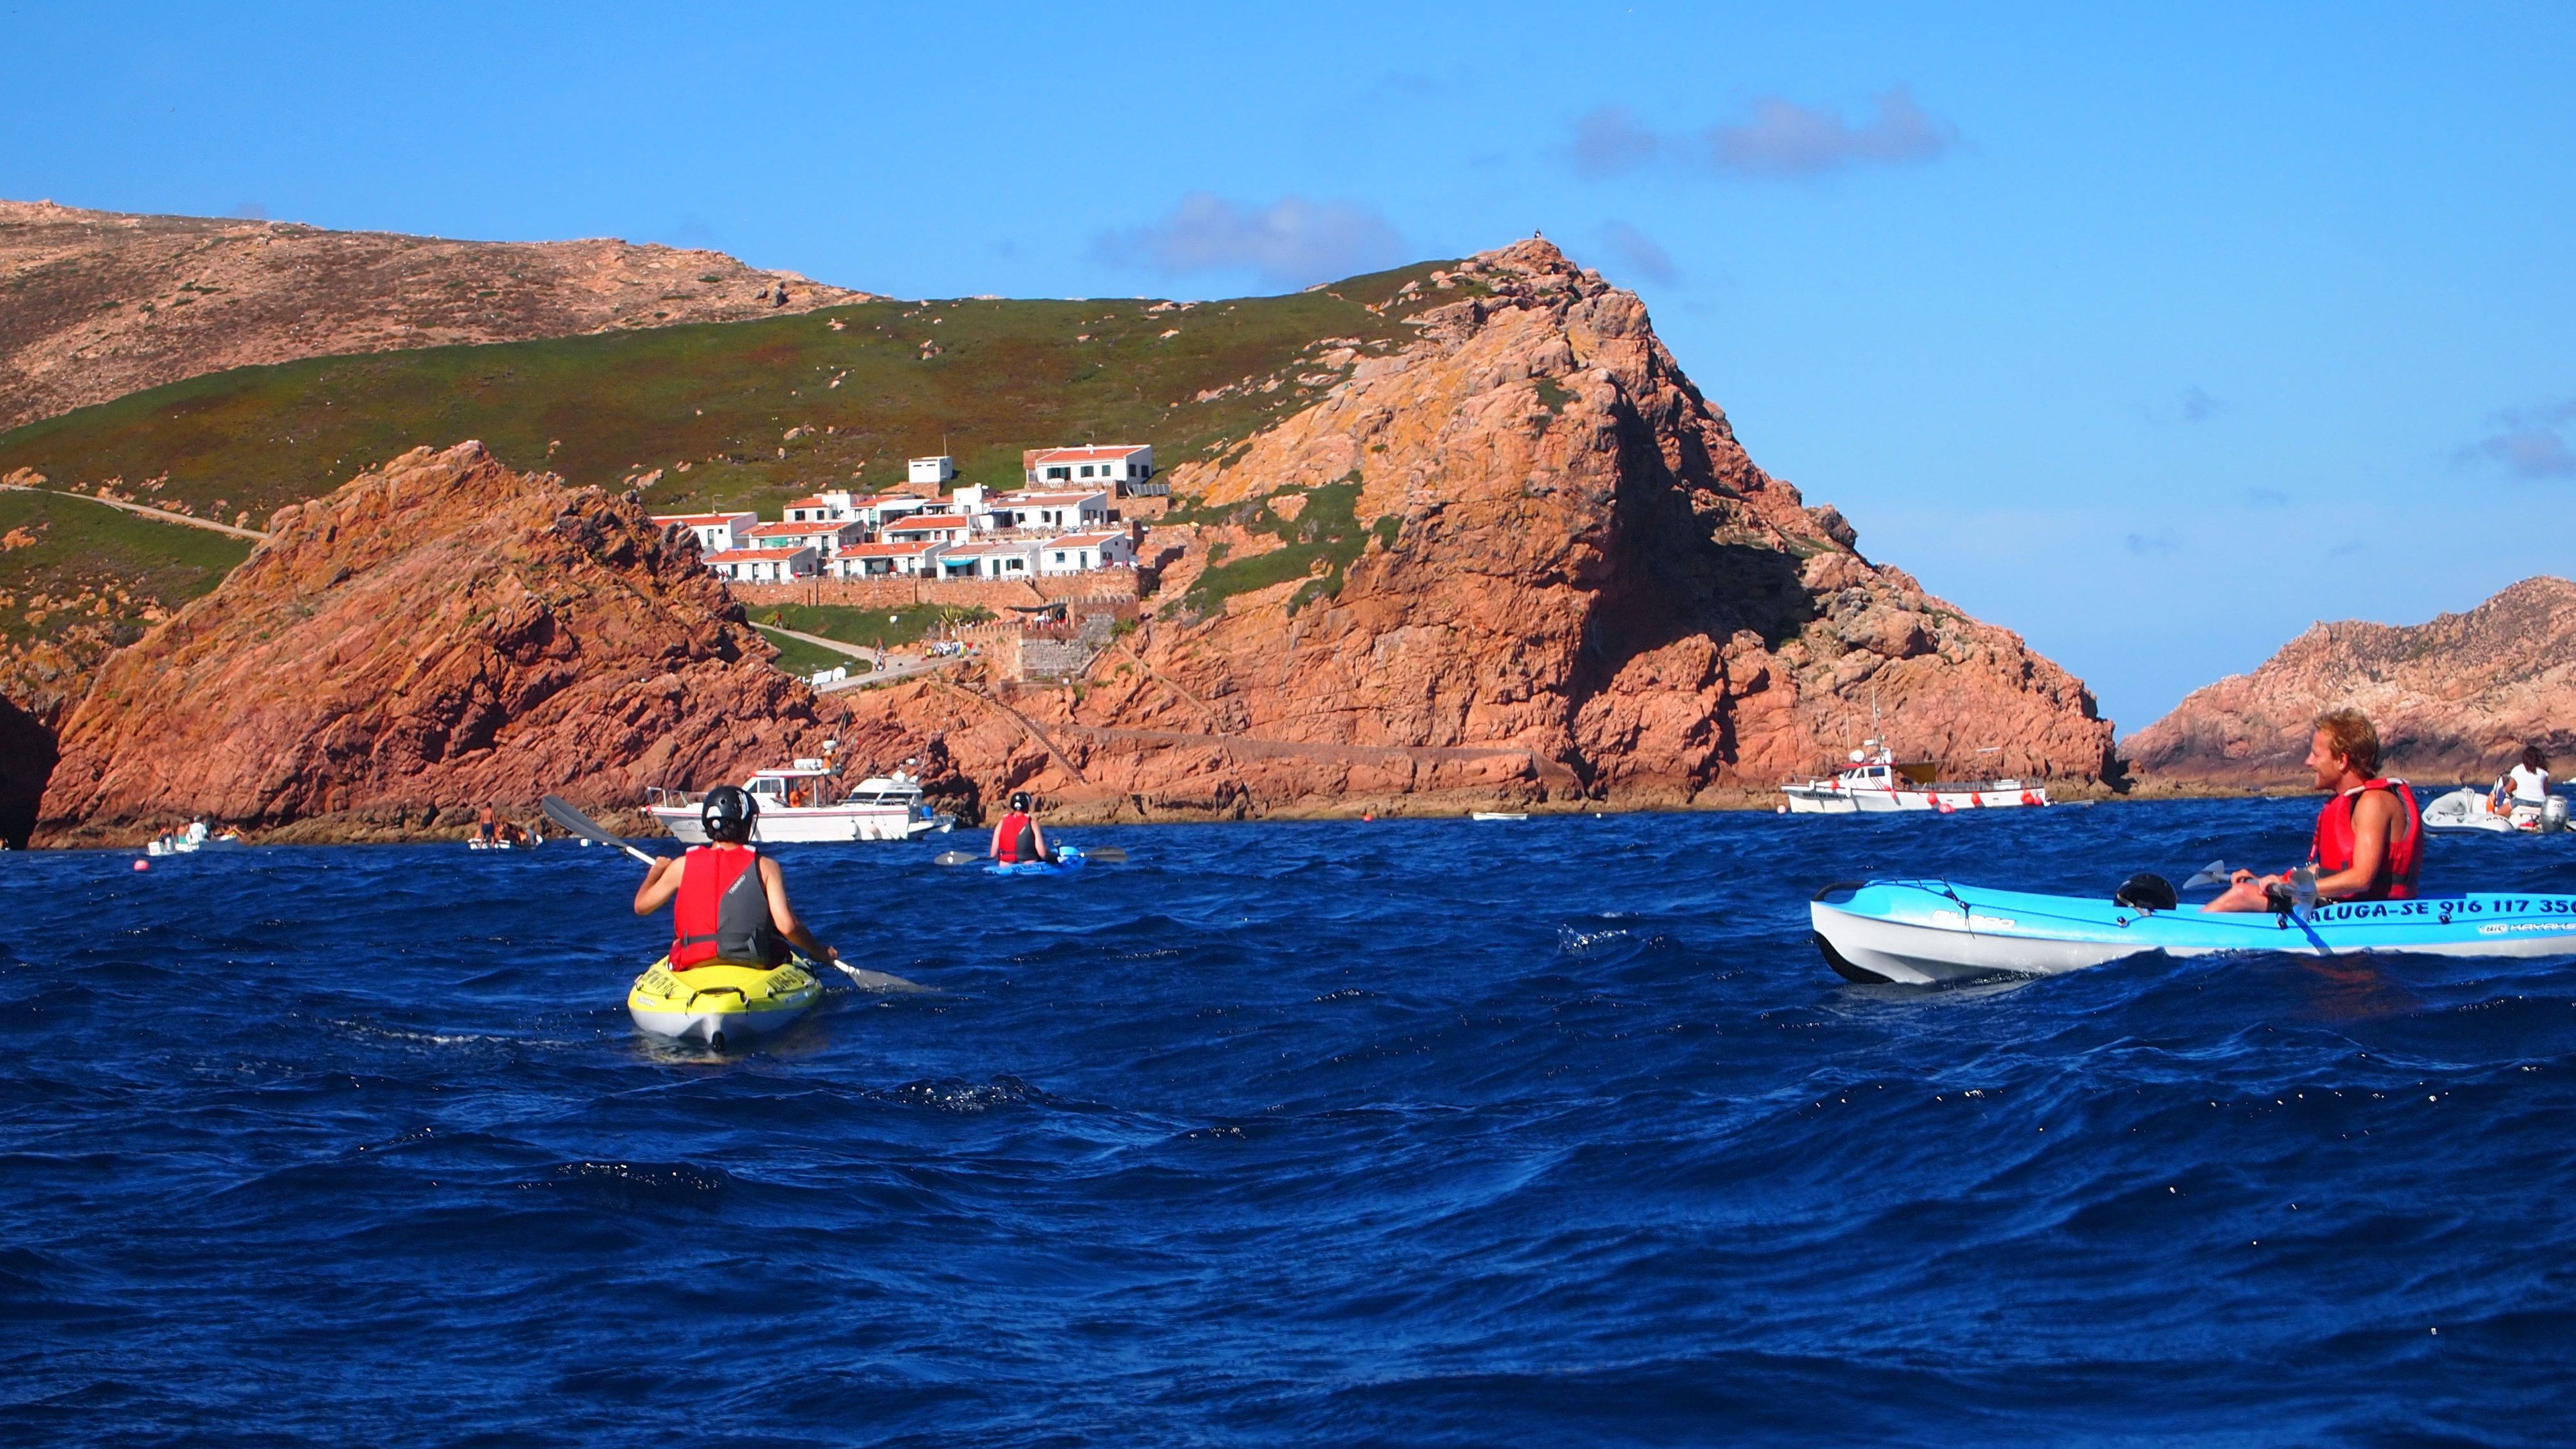 Kayakers off the coast of Berlengas Islands